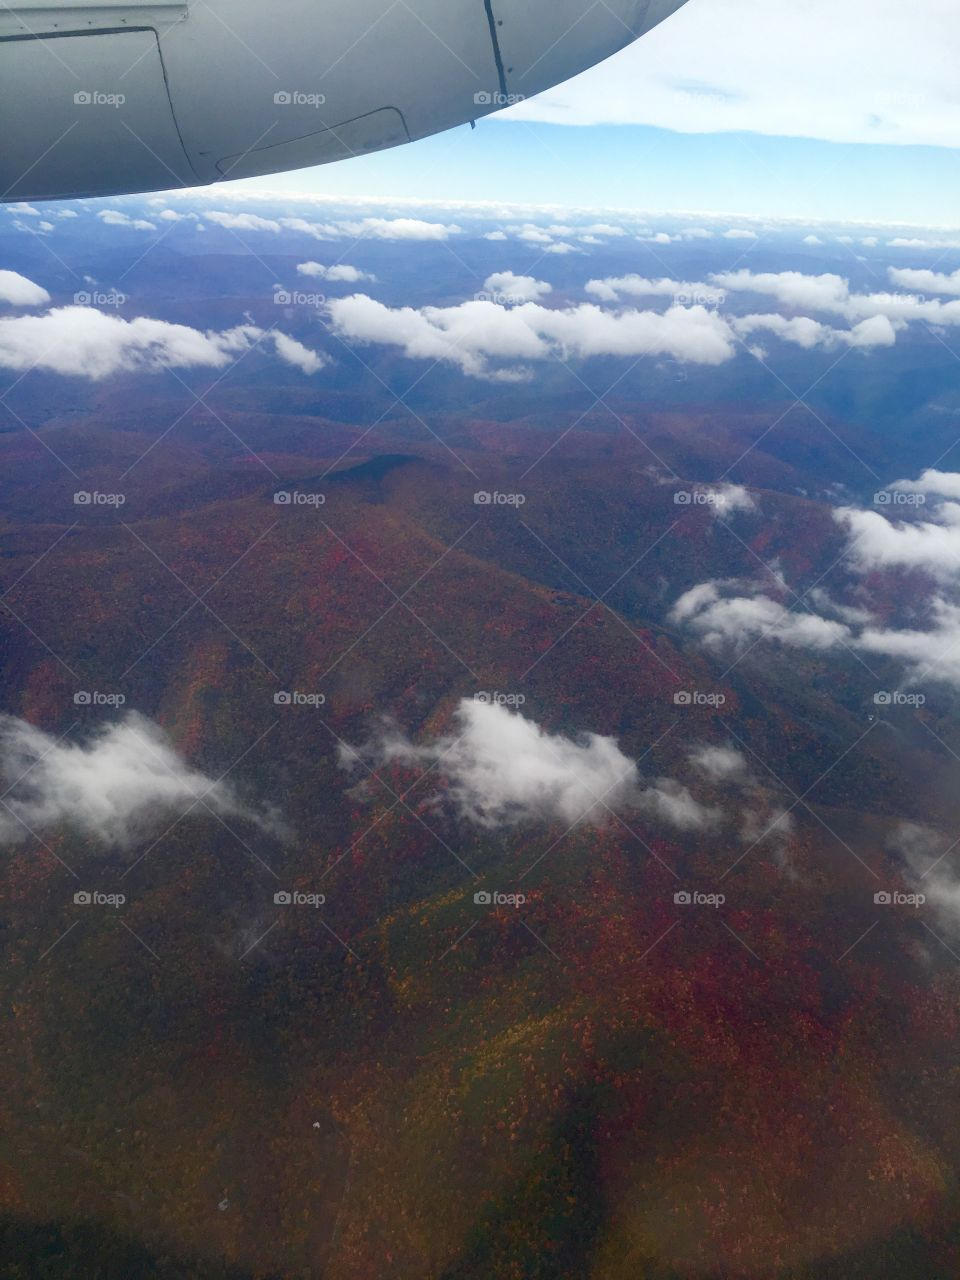 A final shot of the wonderful view of the foliage in Upstate NY from above.